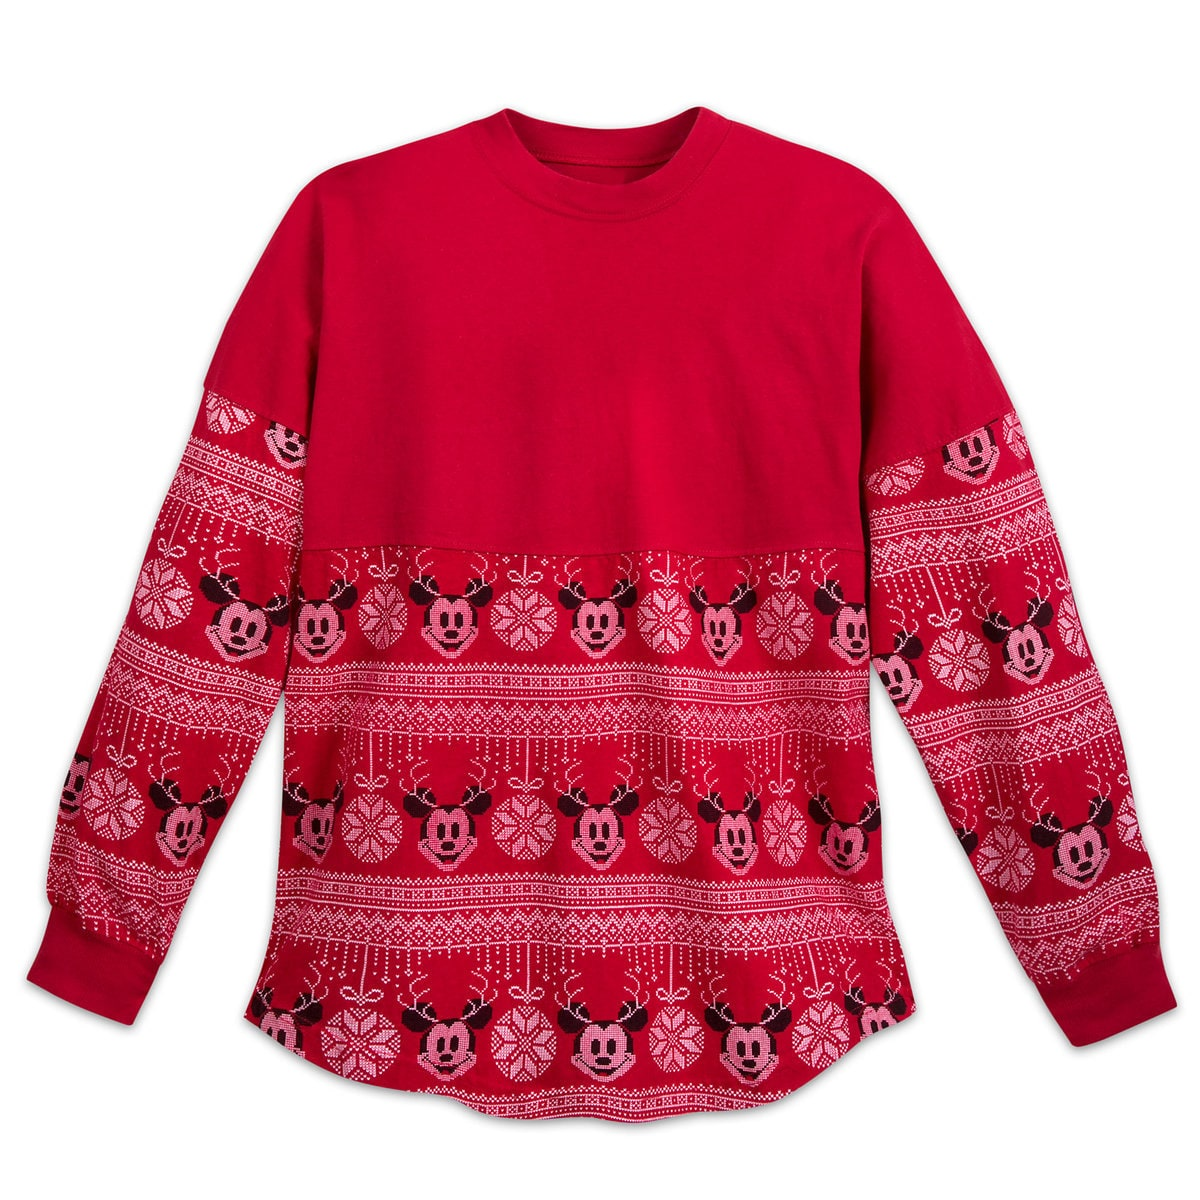 1c0ad3722 Product Image of Mickey Mouse Holiday Spirit Jersey for Adults # 1